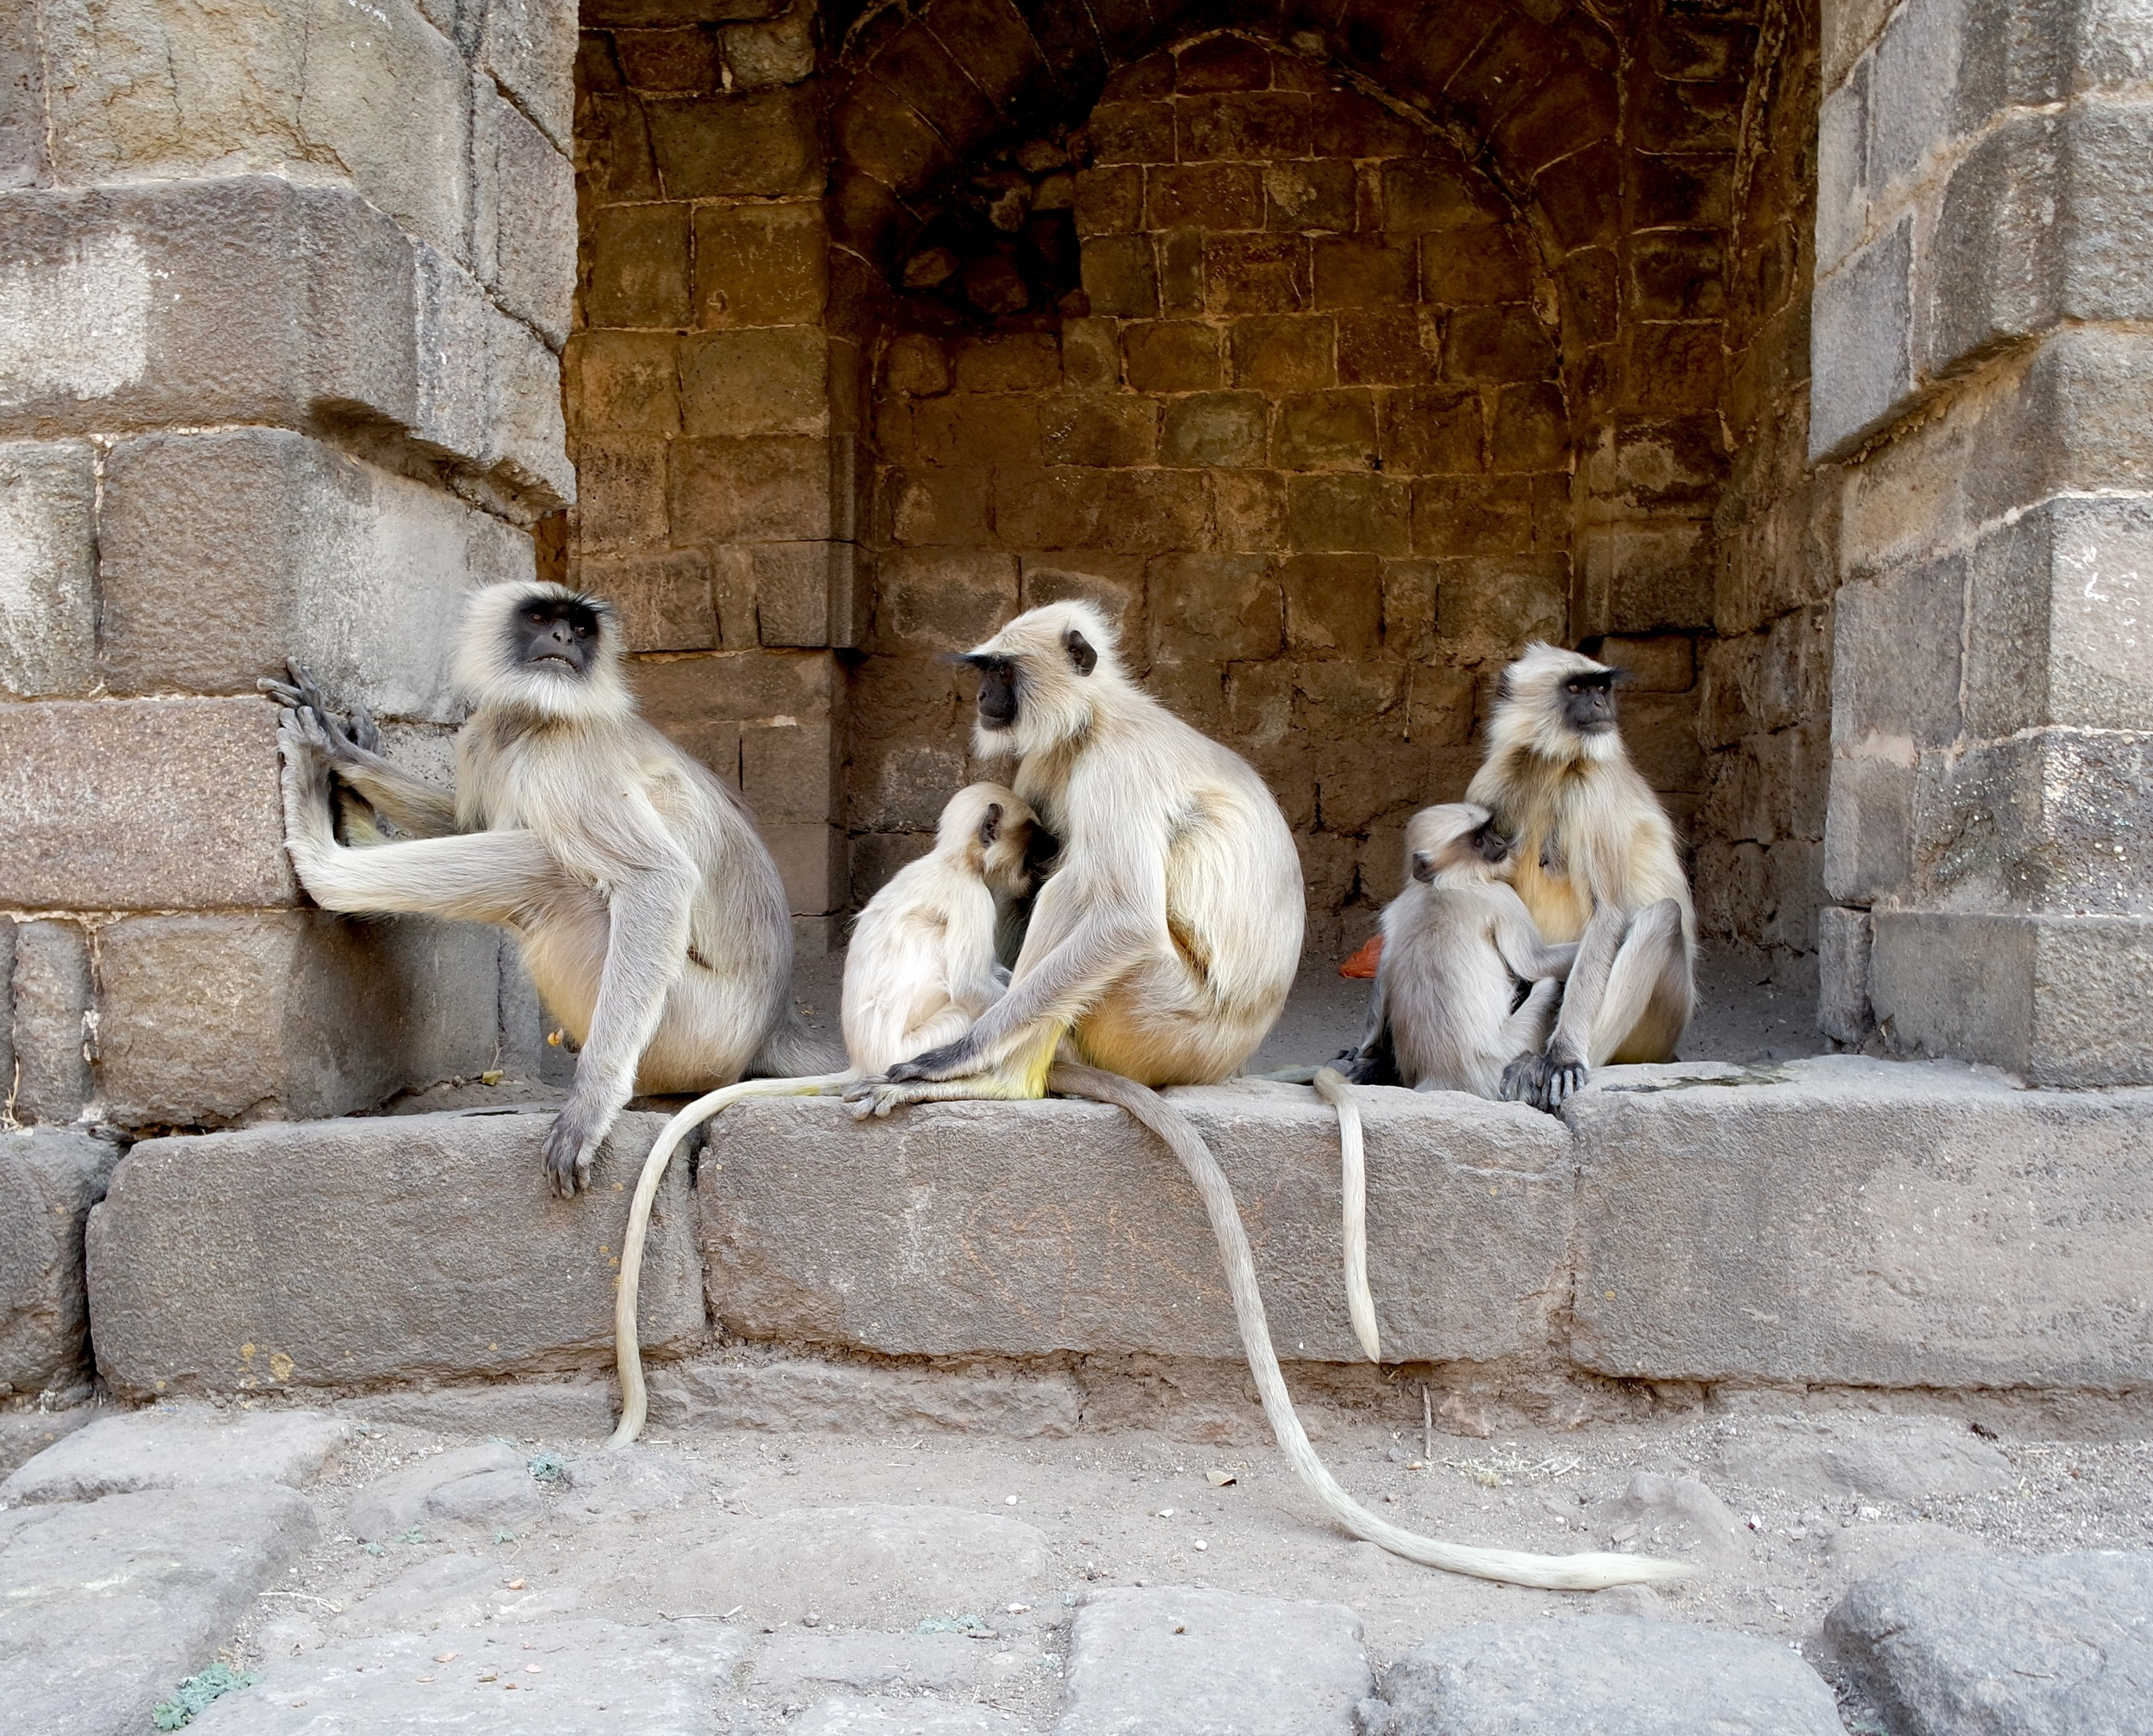 Langur monkeys are found throughout the complex